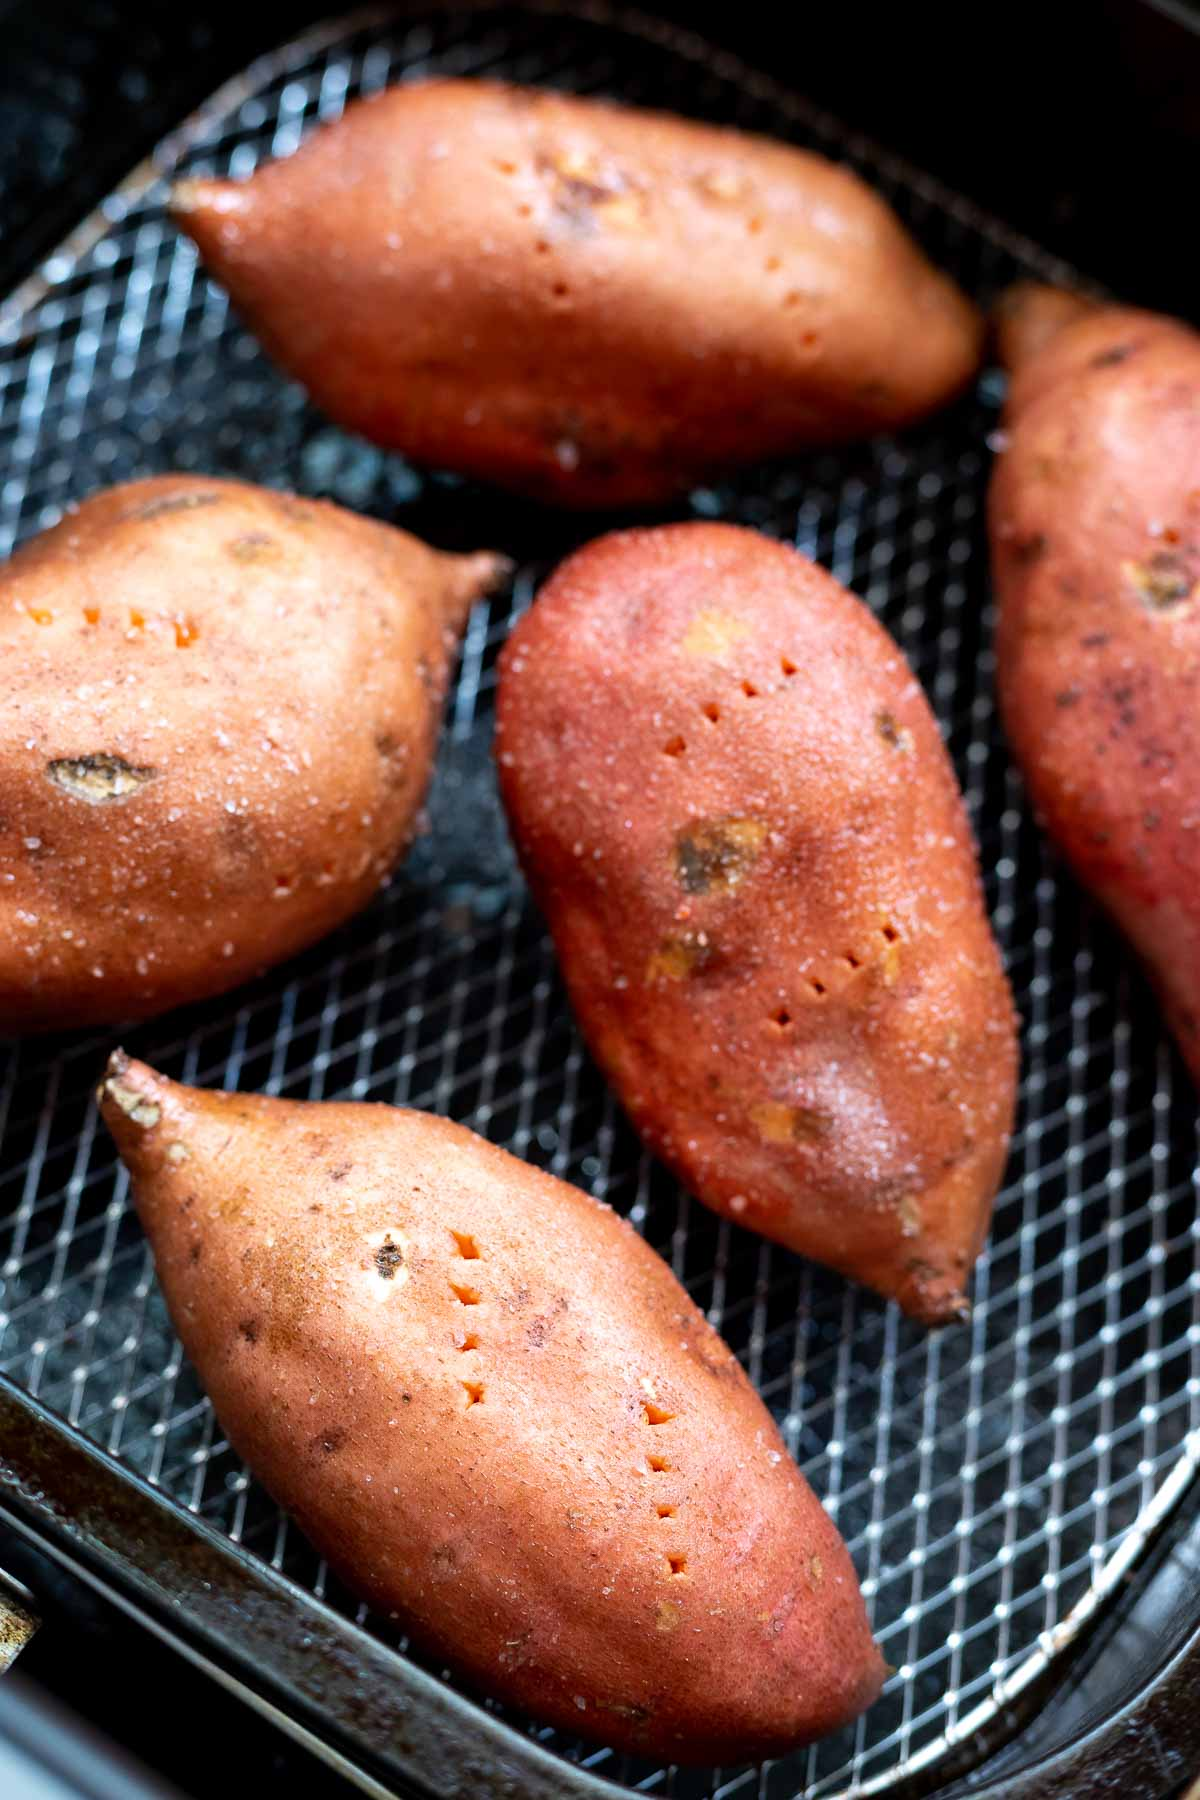 raw sweet potatoes in air fryer basket